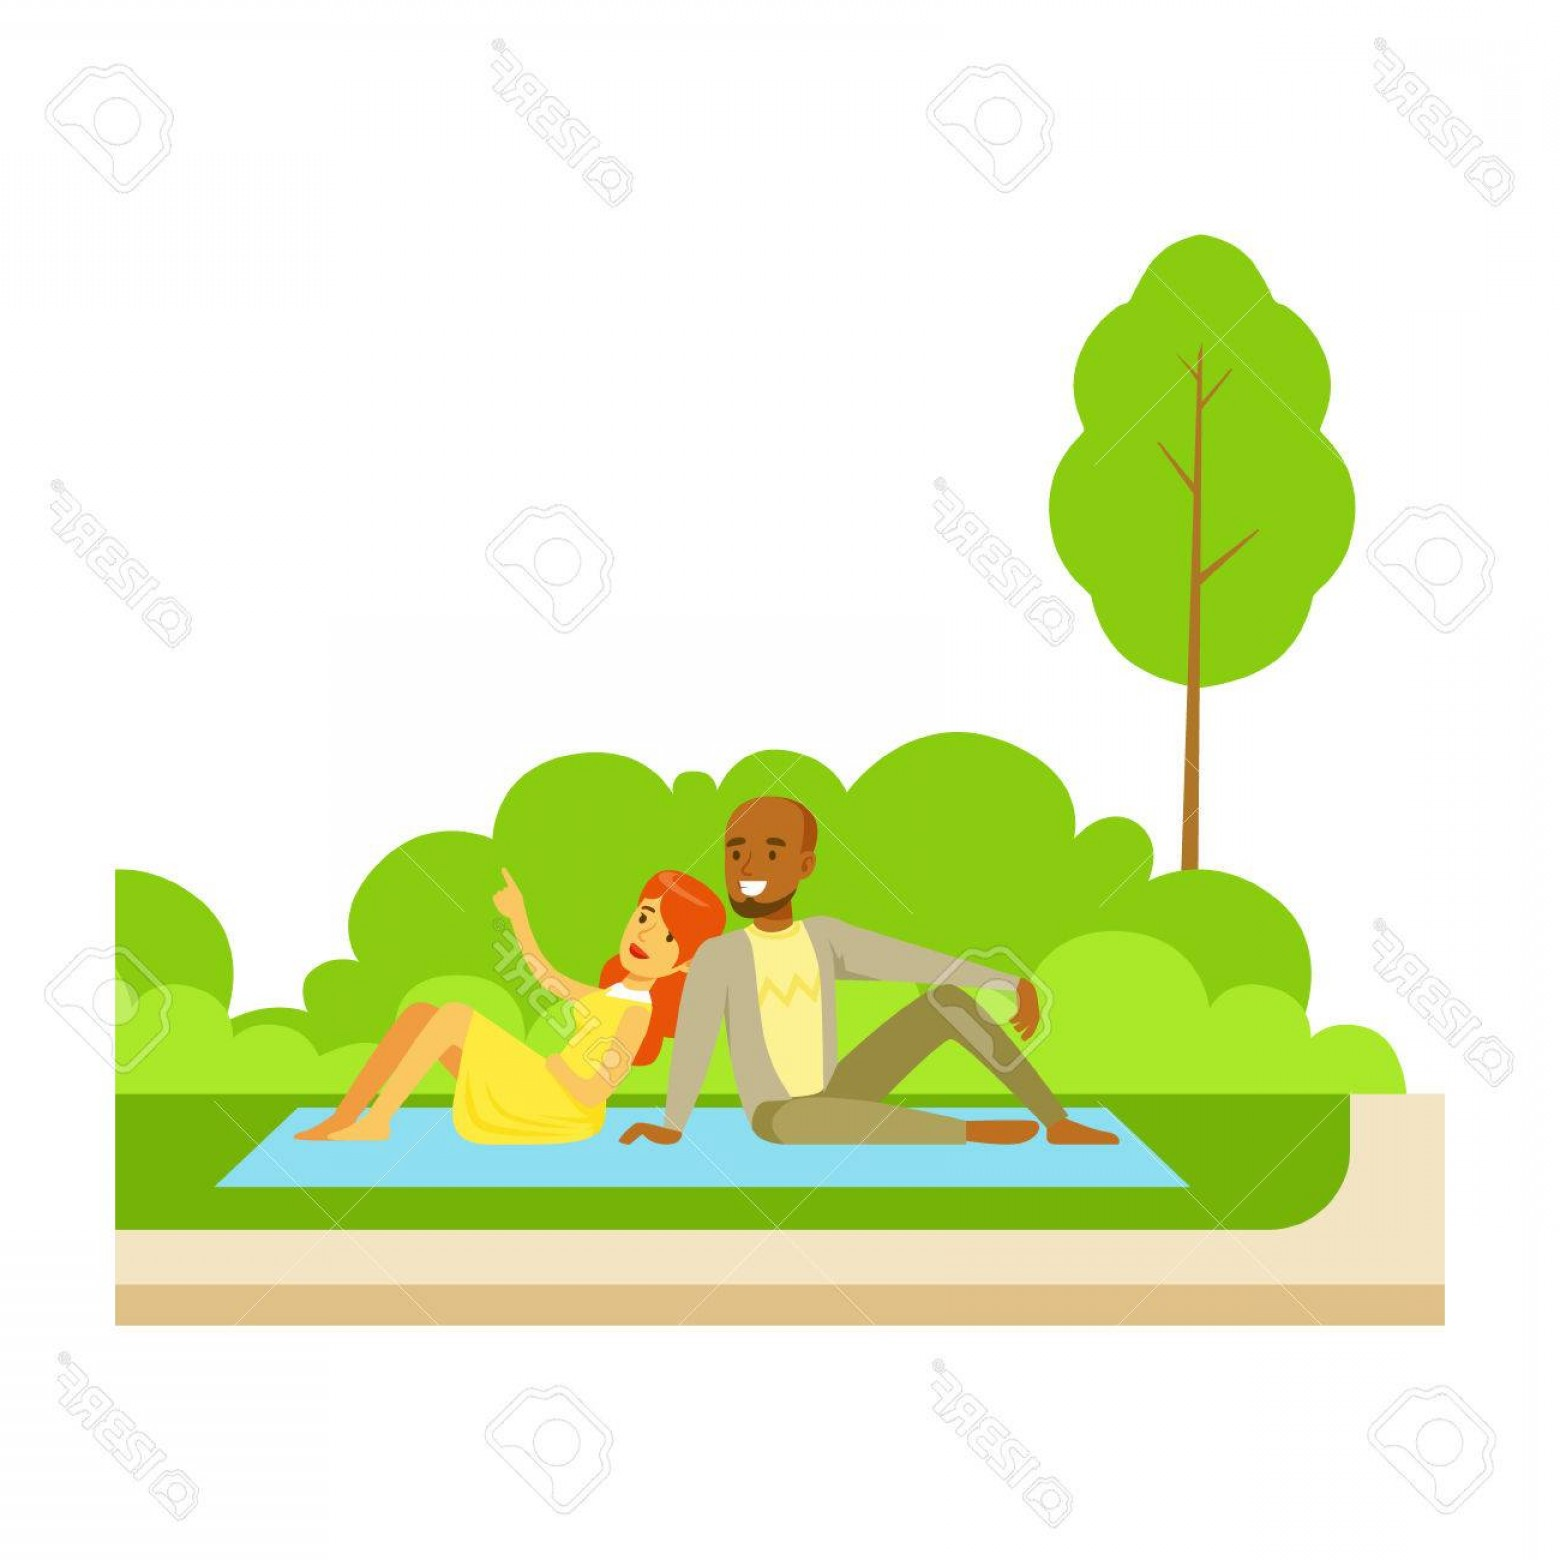 Picnic Vector Scenery: Photostock Vector Couple Having Picnic On Grass Part Of People In The Park Activities Series Smiling Characters Outdoo